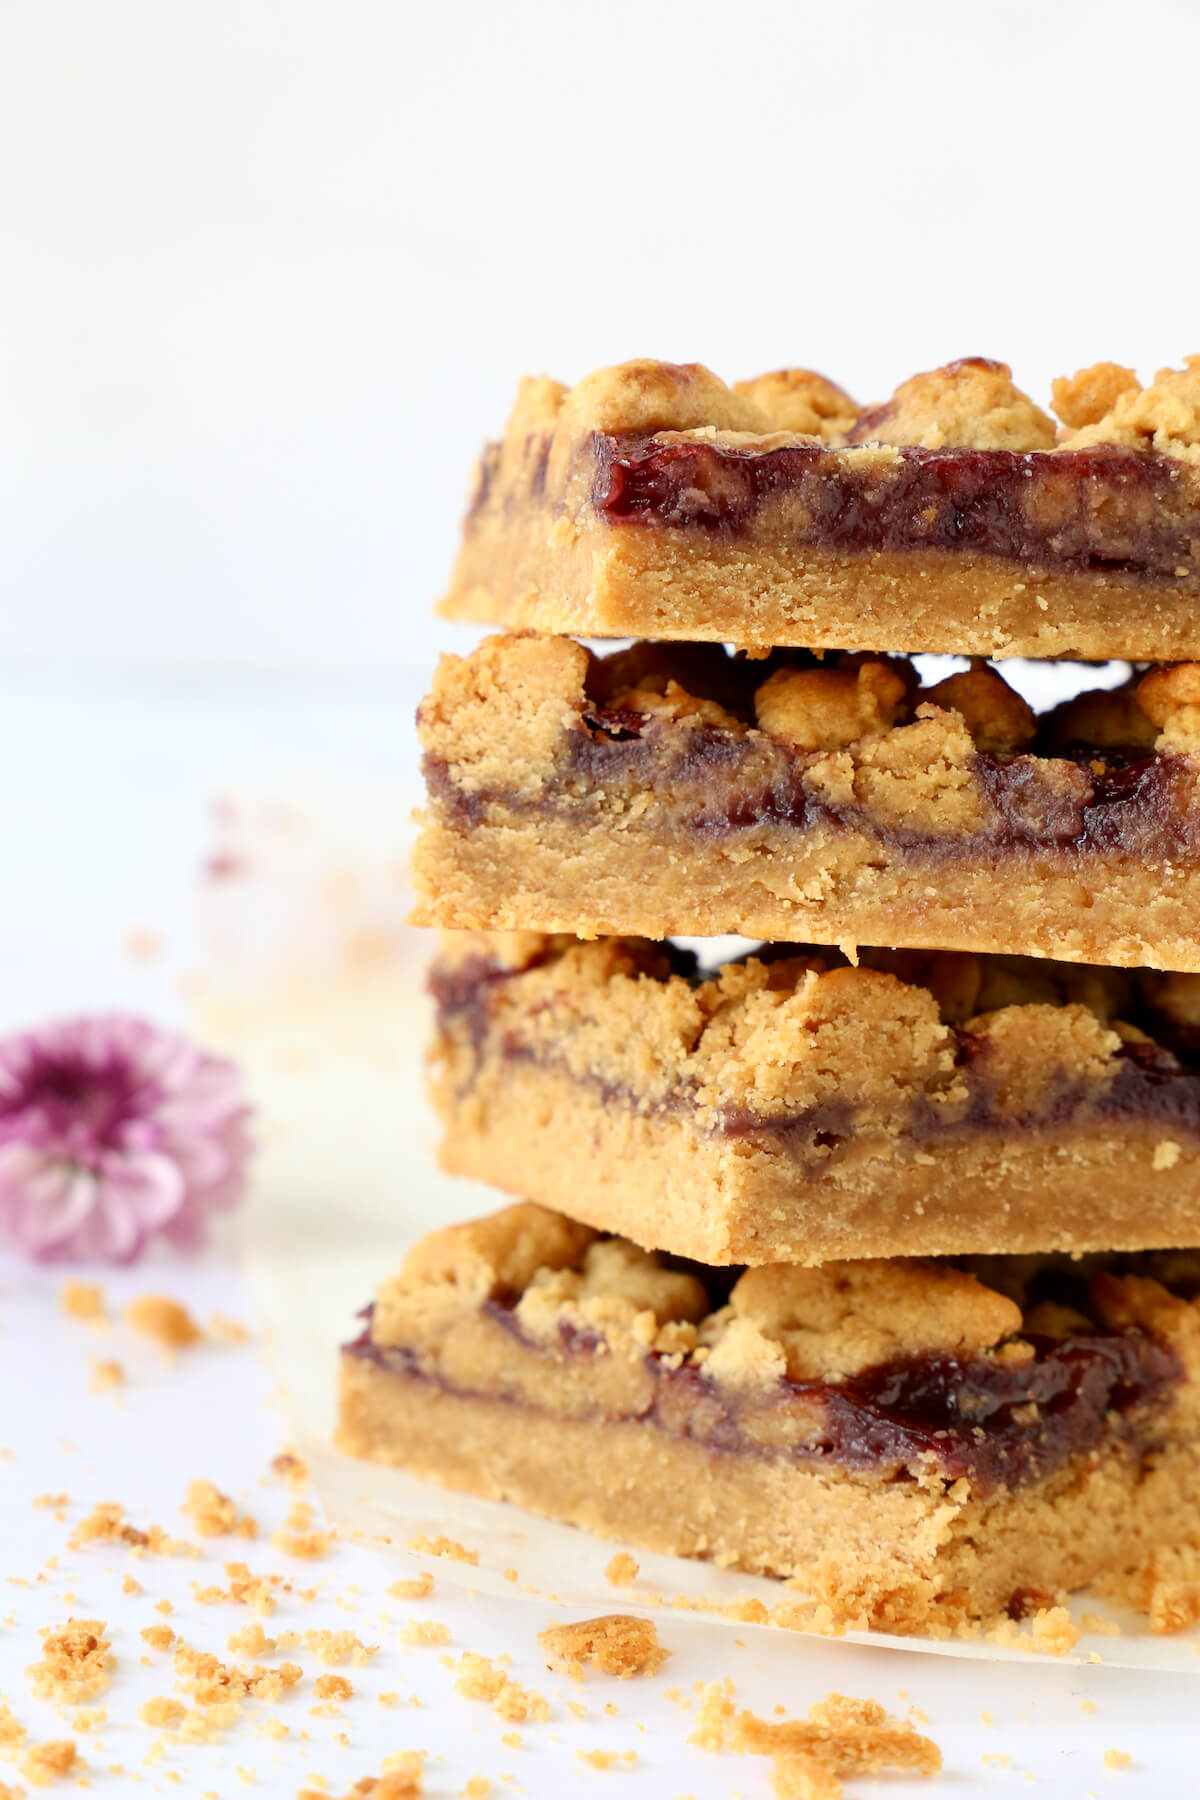 A close up of four peanut butter and jelly bars with one flower in the background.